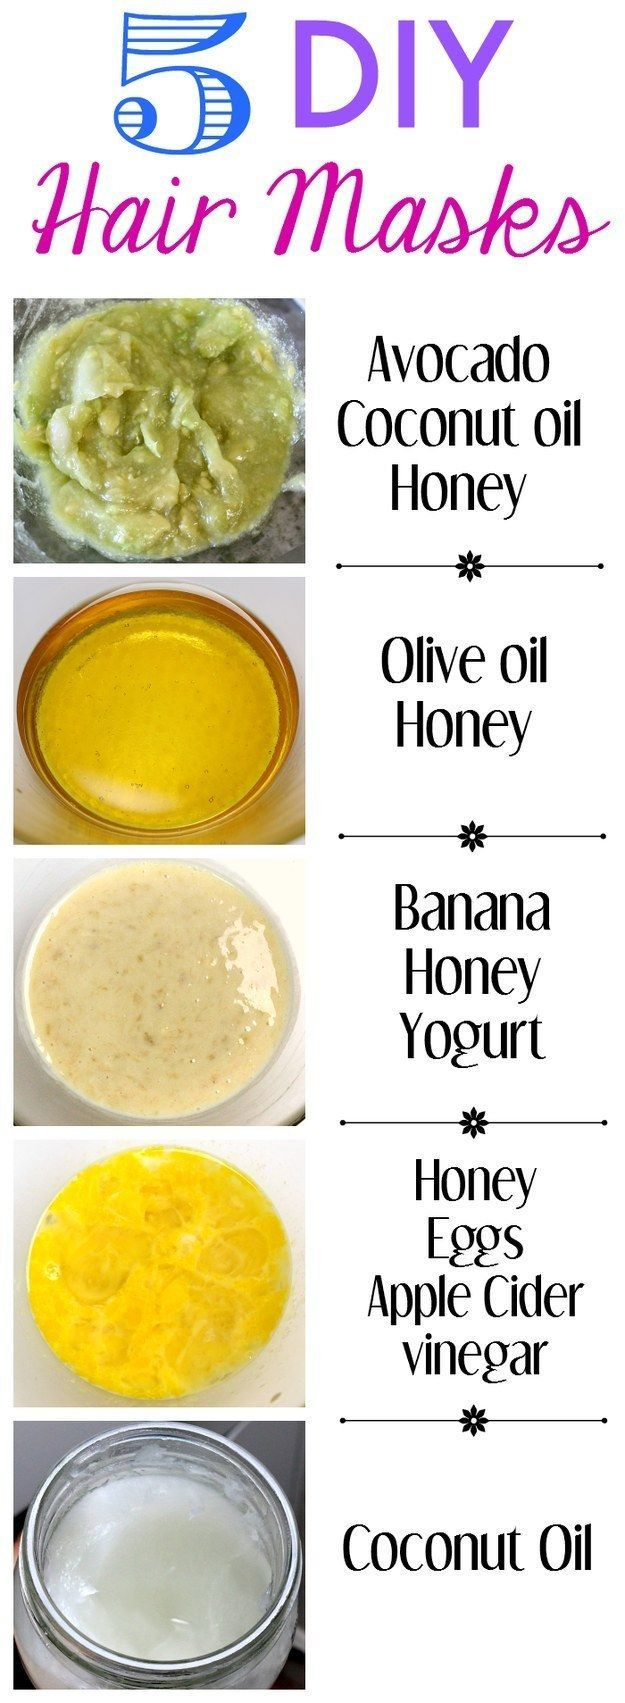 15 Hair Masks to Protect Your Hair Homemade hair